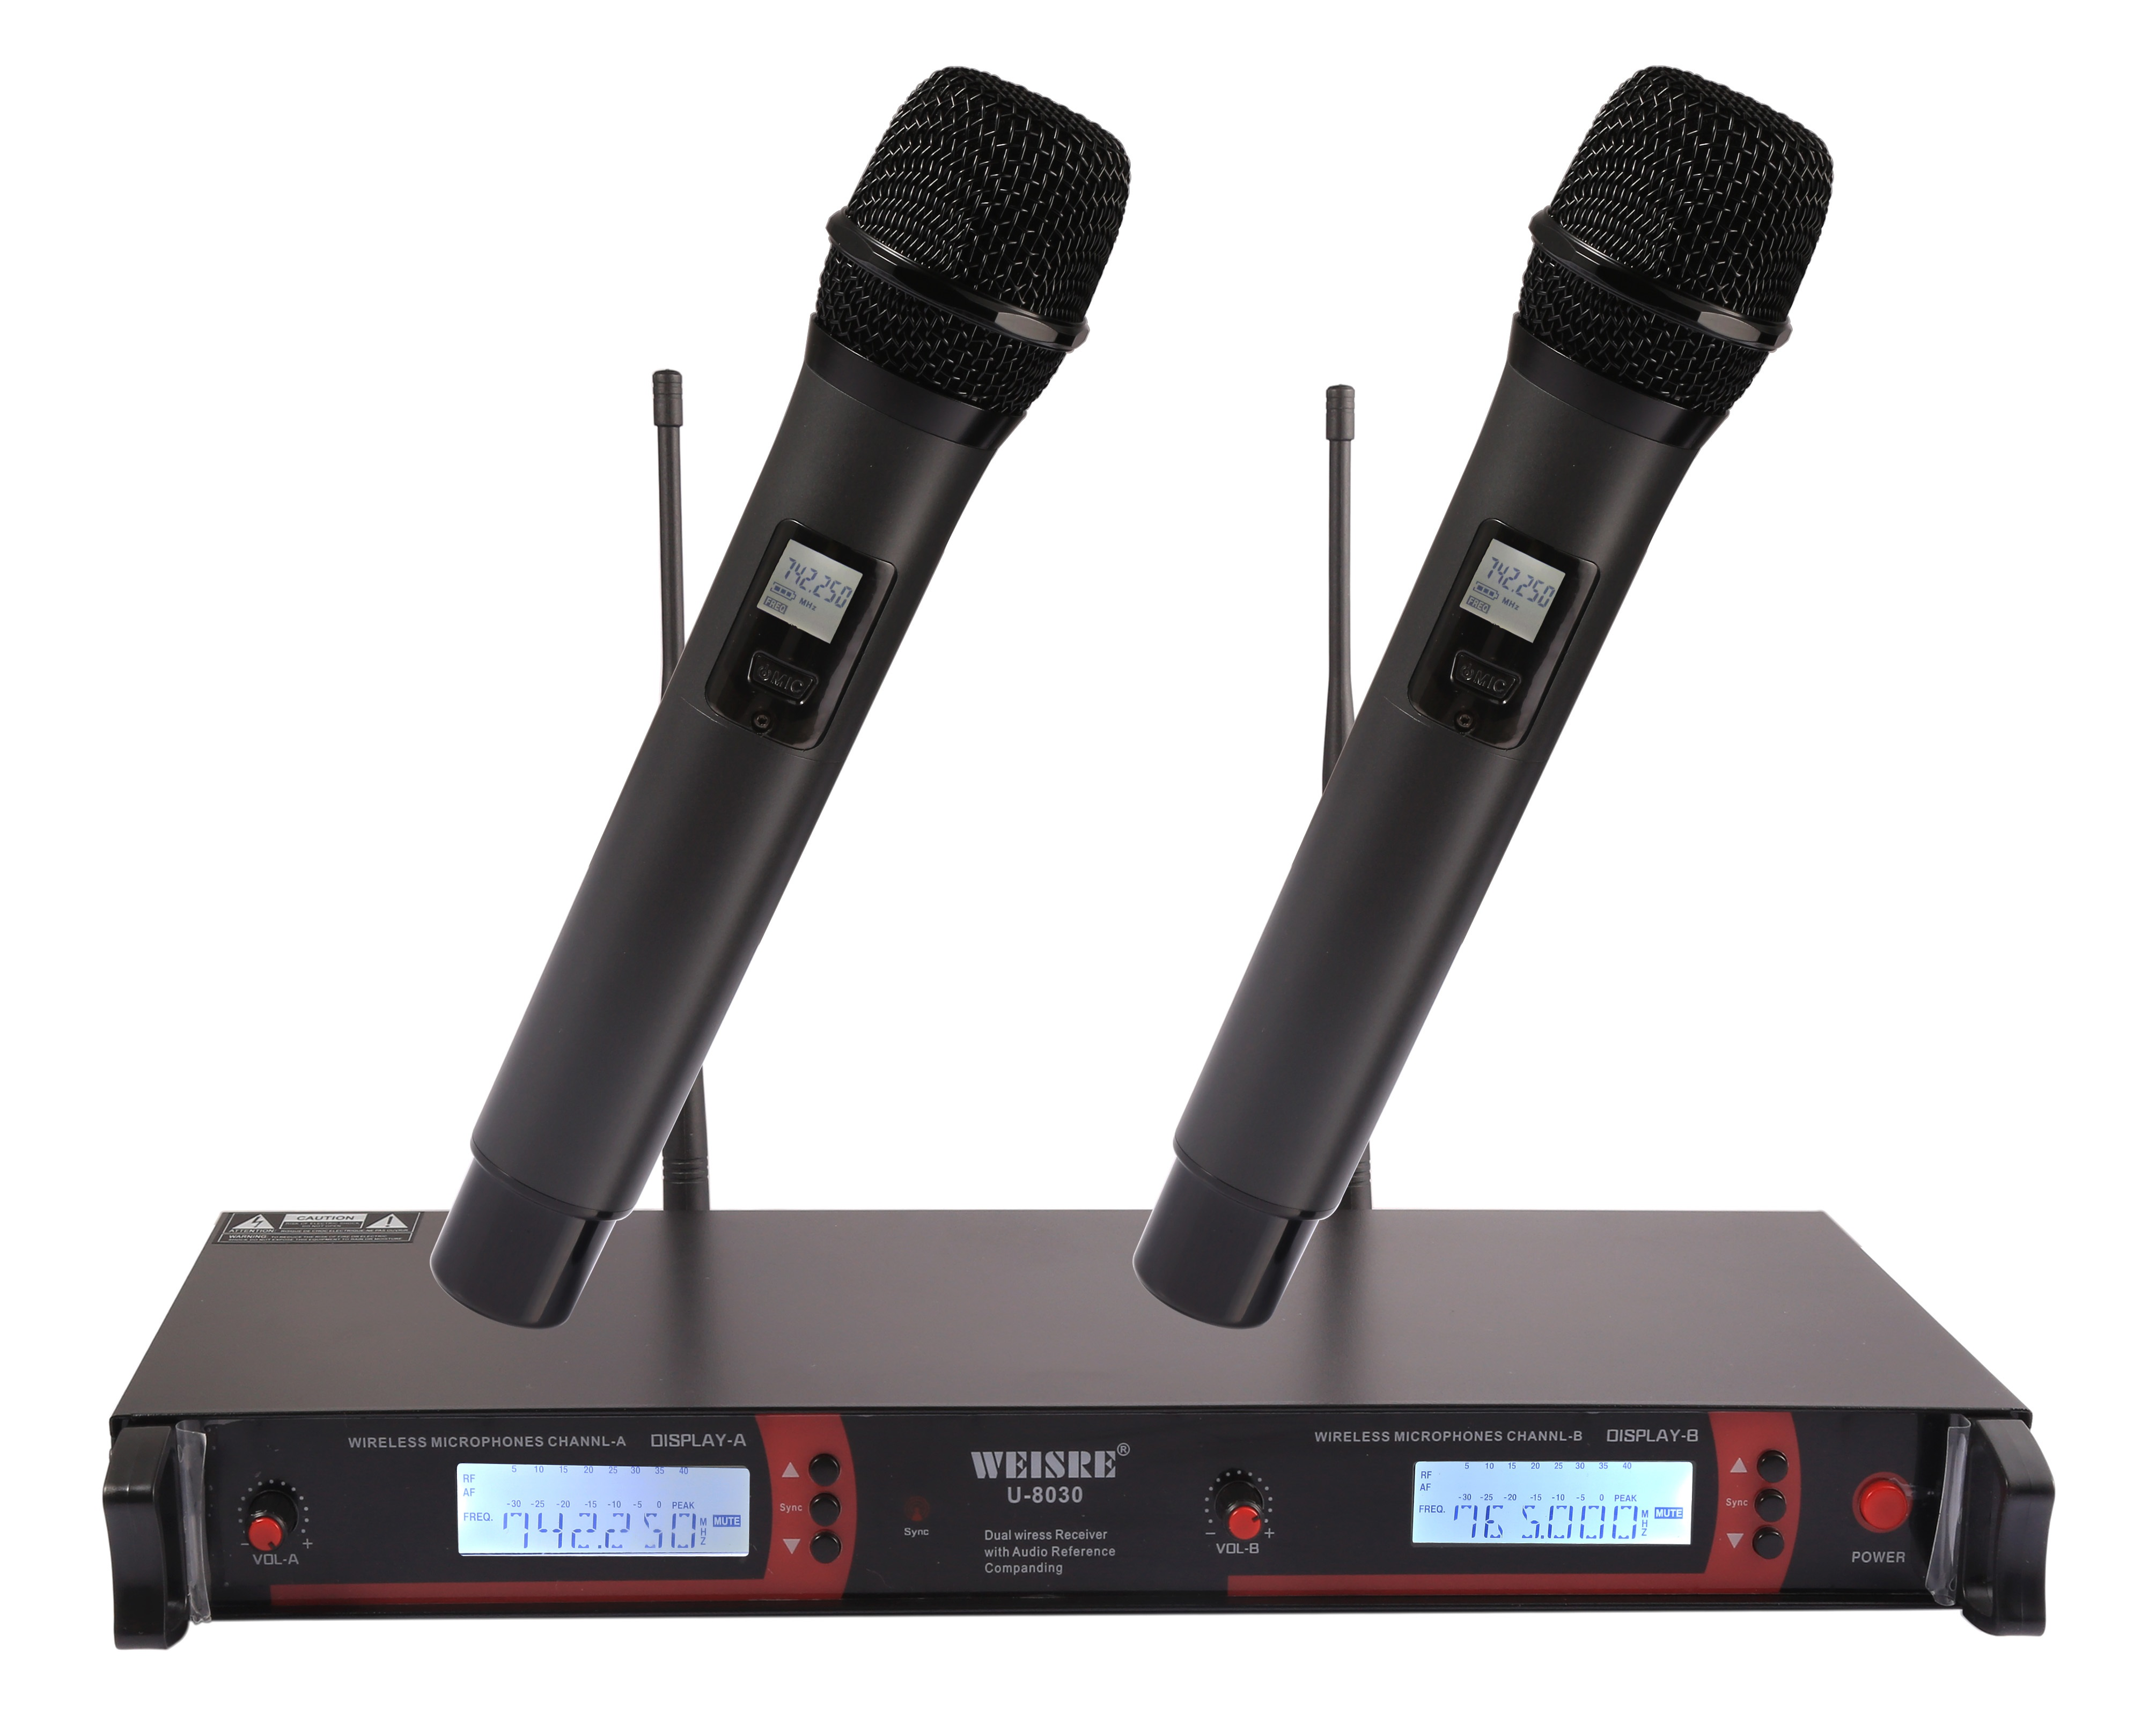 WEISRE Professional UHF Wireless Microphone System Frequency Adjustment with 2 Handheld Microphones Karaoke Radio Mic